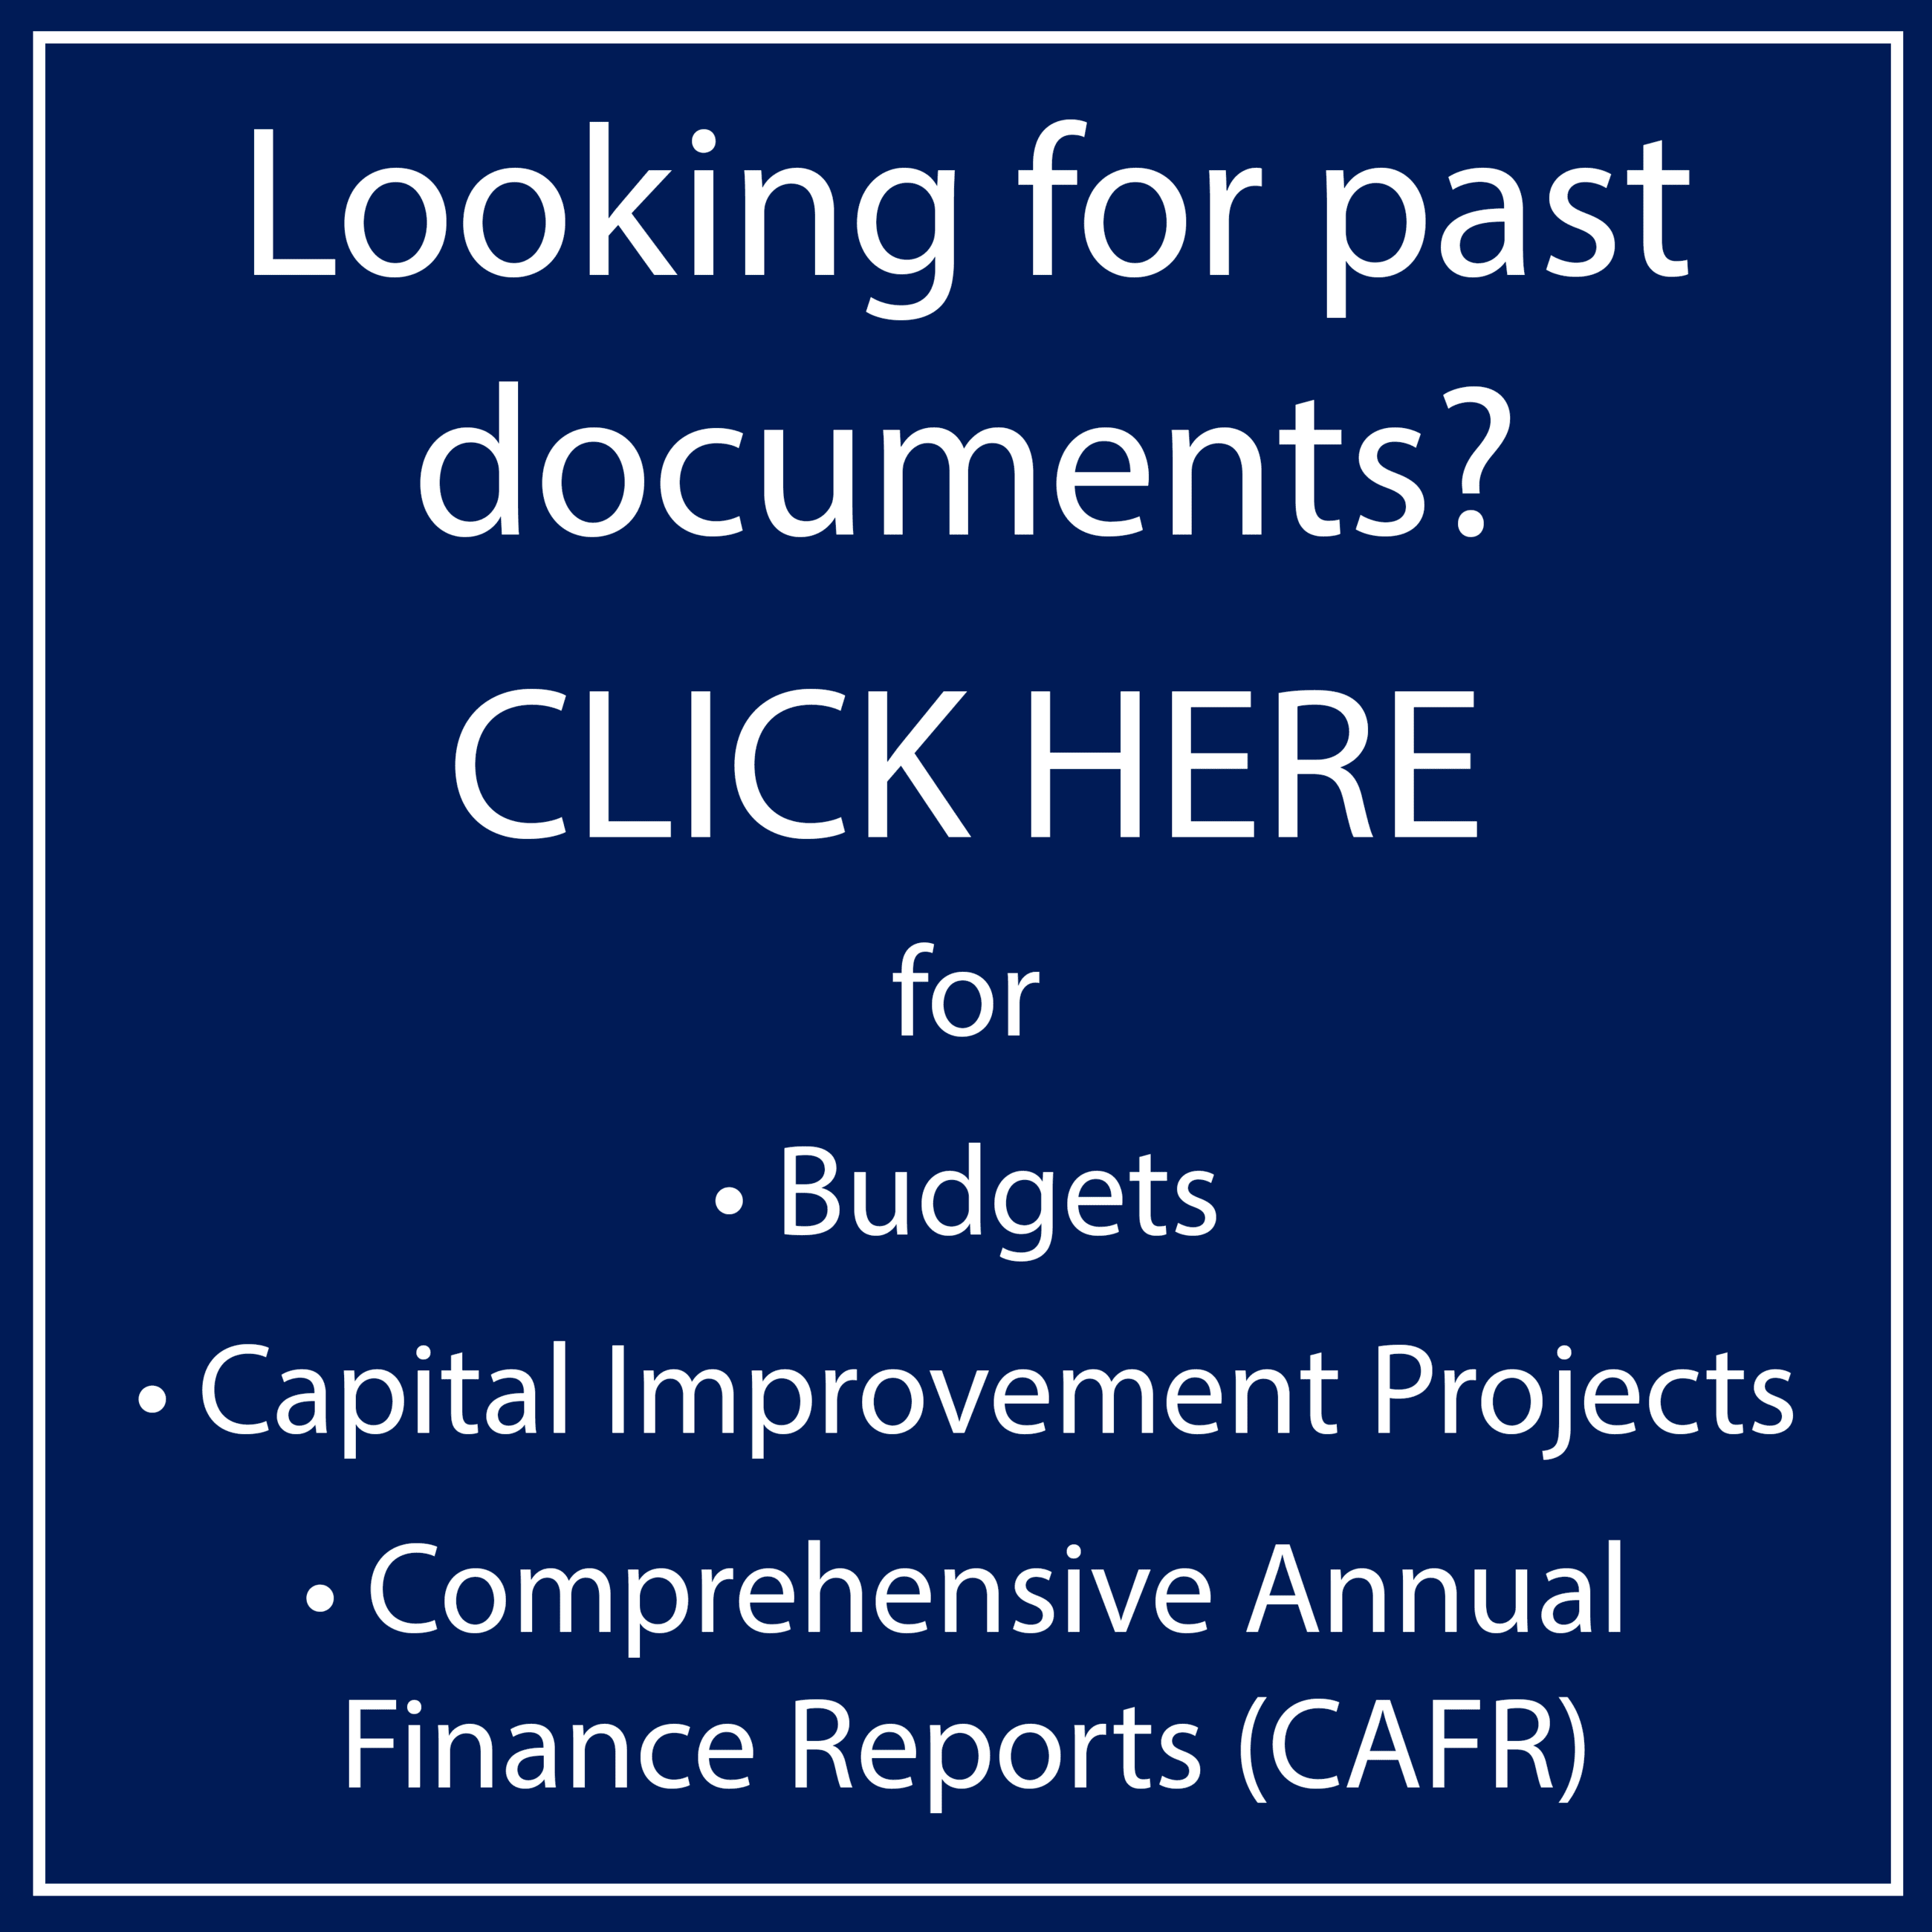 Looking for past documents? Click here to see previous Budgets, CIP and CAFR Reports